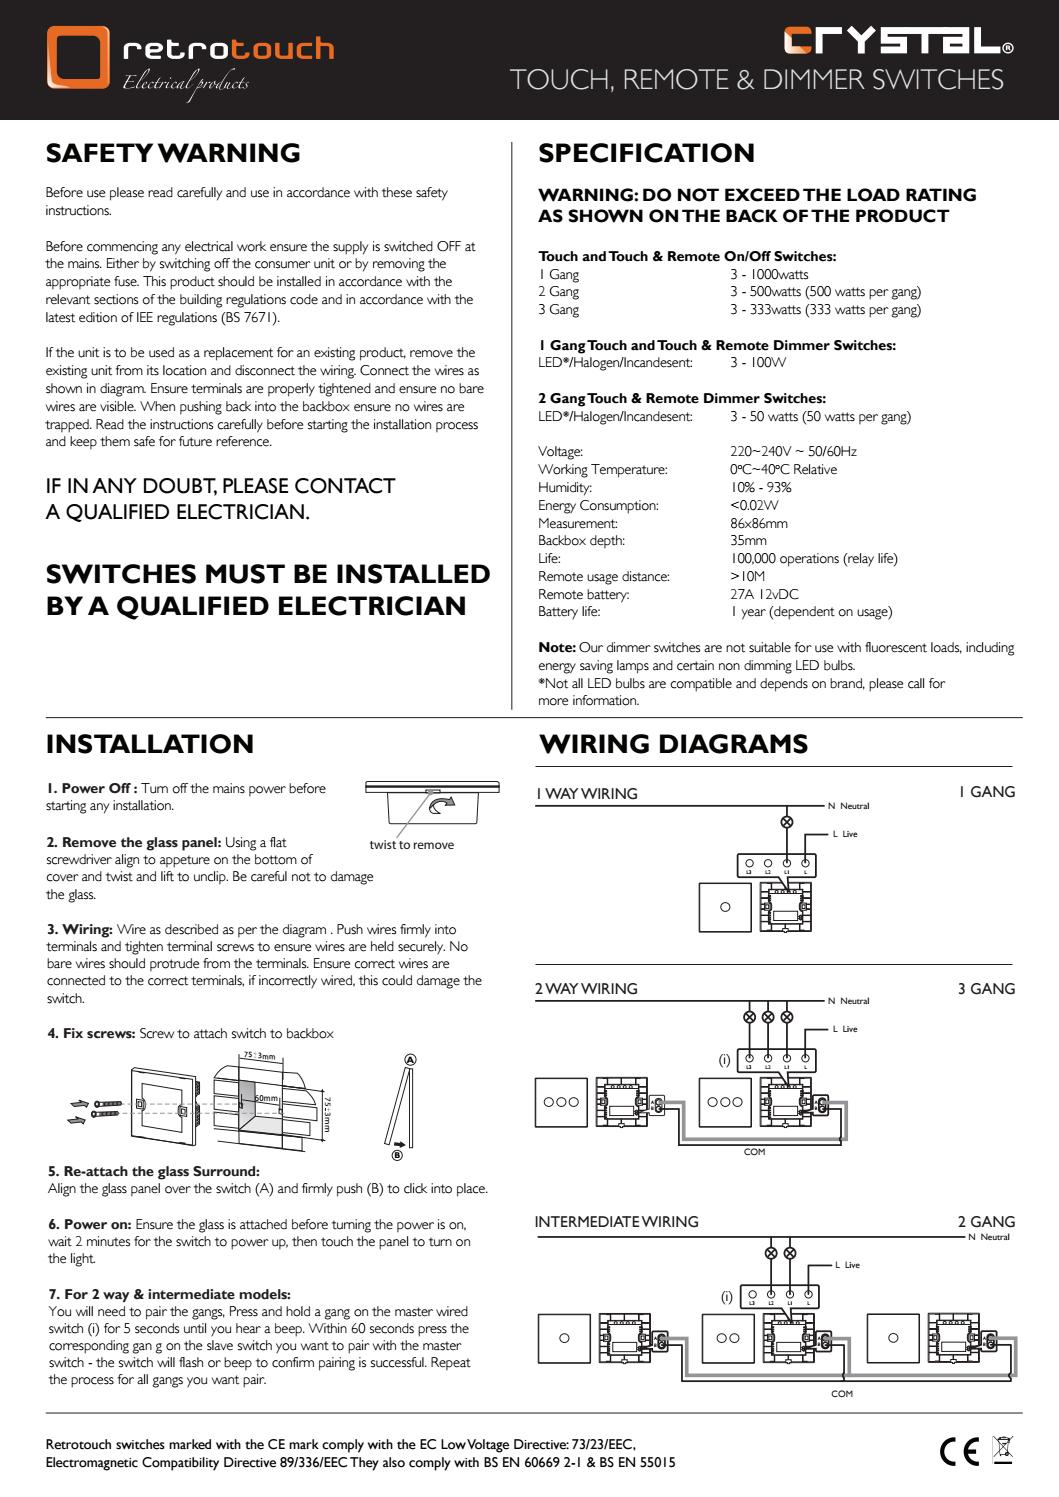 Retrotouch crystal touch and remote switches and dimmers ... on lutron dimmer switches wiring diagram, 3 way light wiring diagram, 3 way outlet wiring diagram, dimmer switch installation diagram, 3 way dimmer switch installation, easy 3 way switch diagram, lutron three-way dimmer diagram, 3 way lamp wiring diagram, touch dimmer wiring diagram,